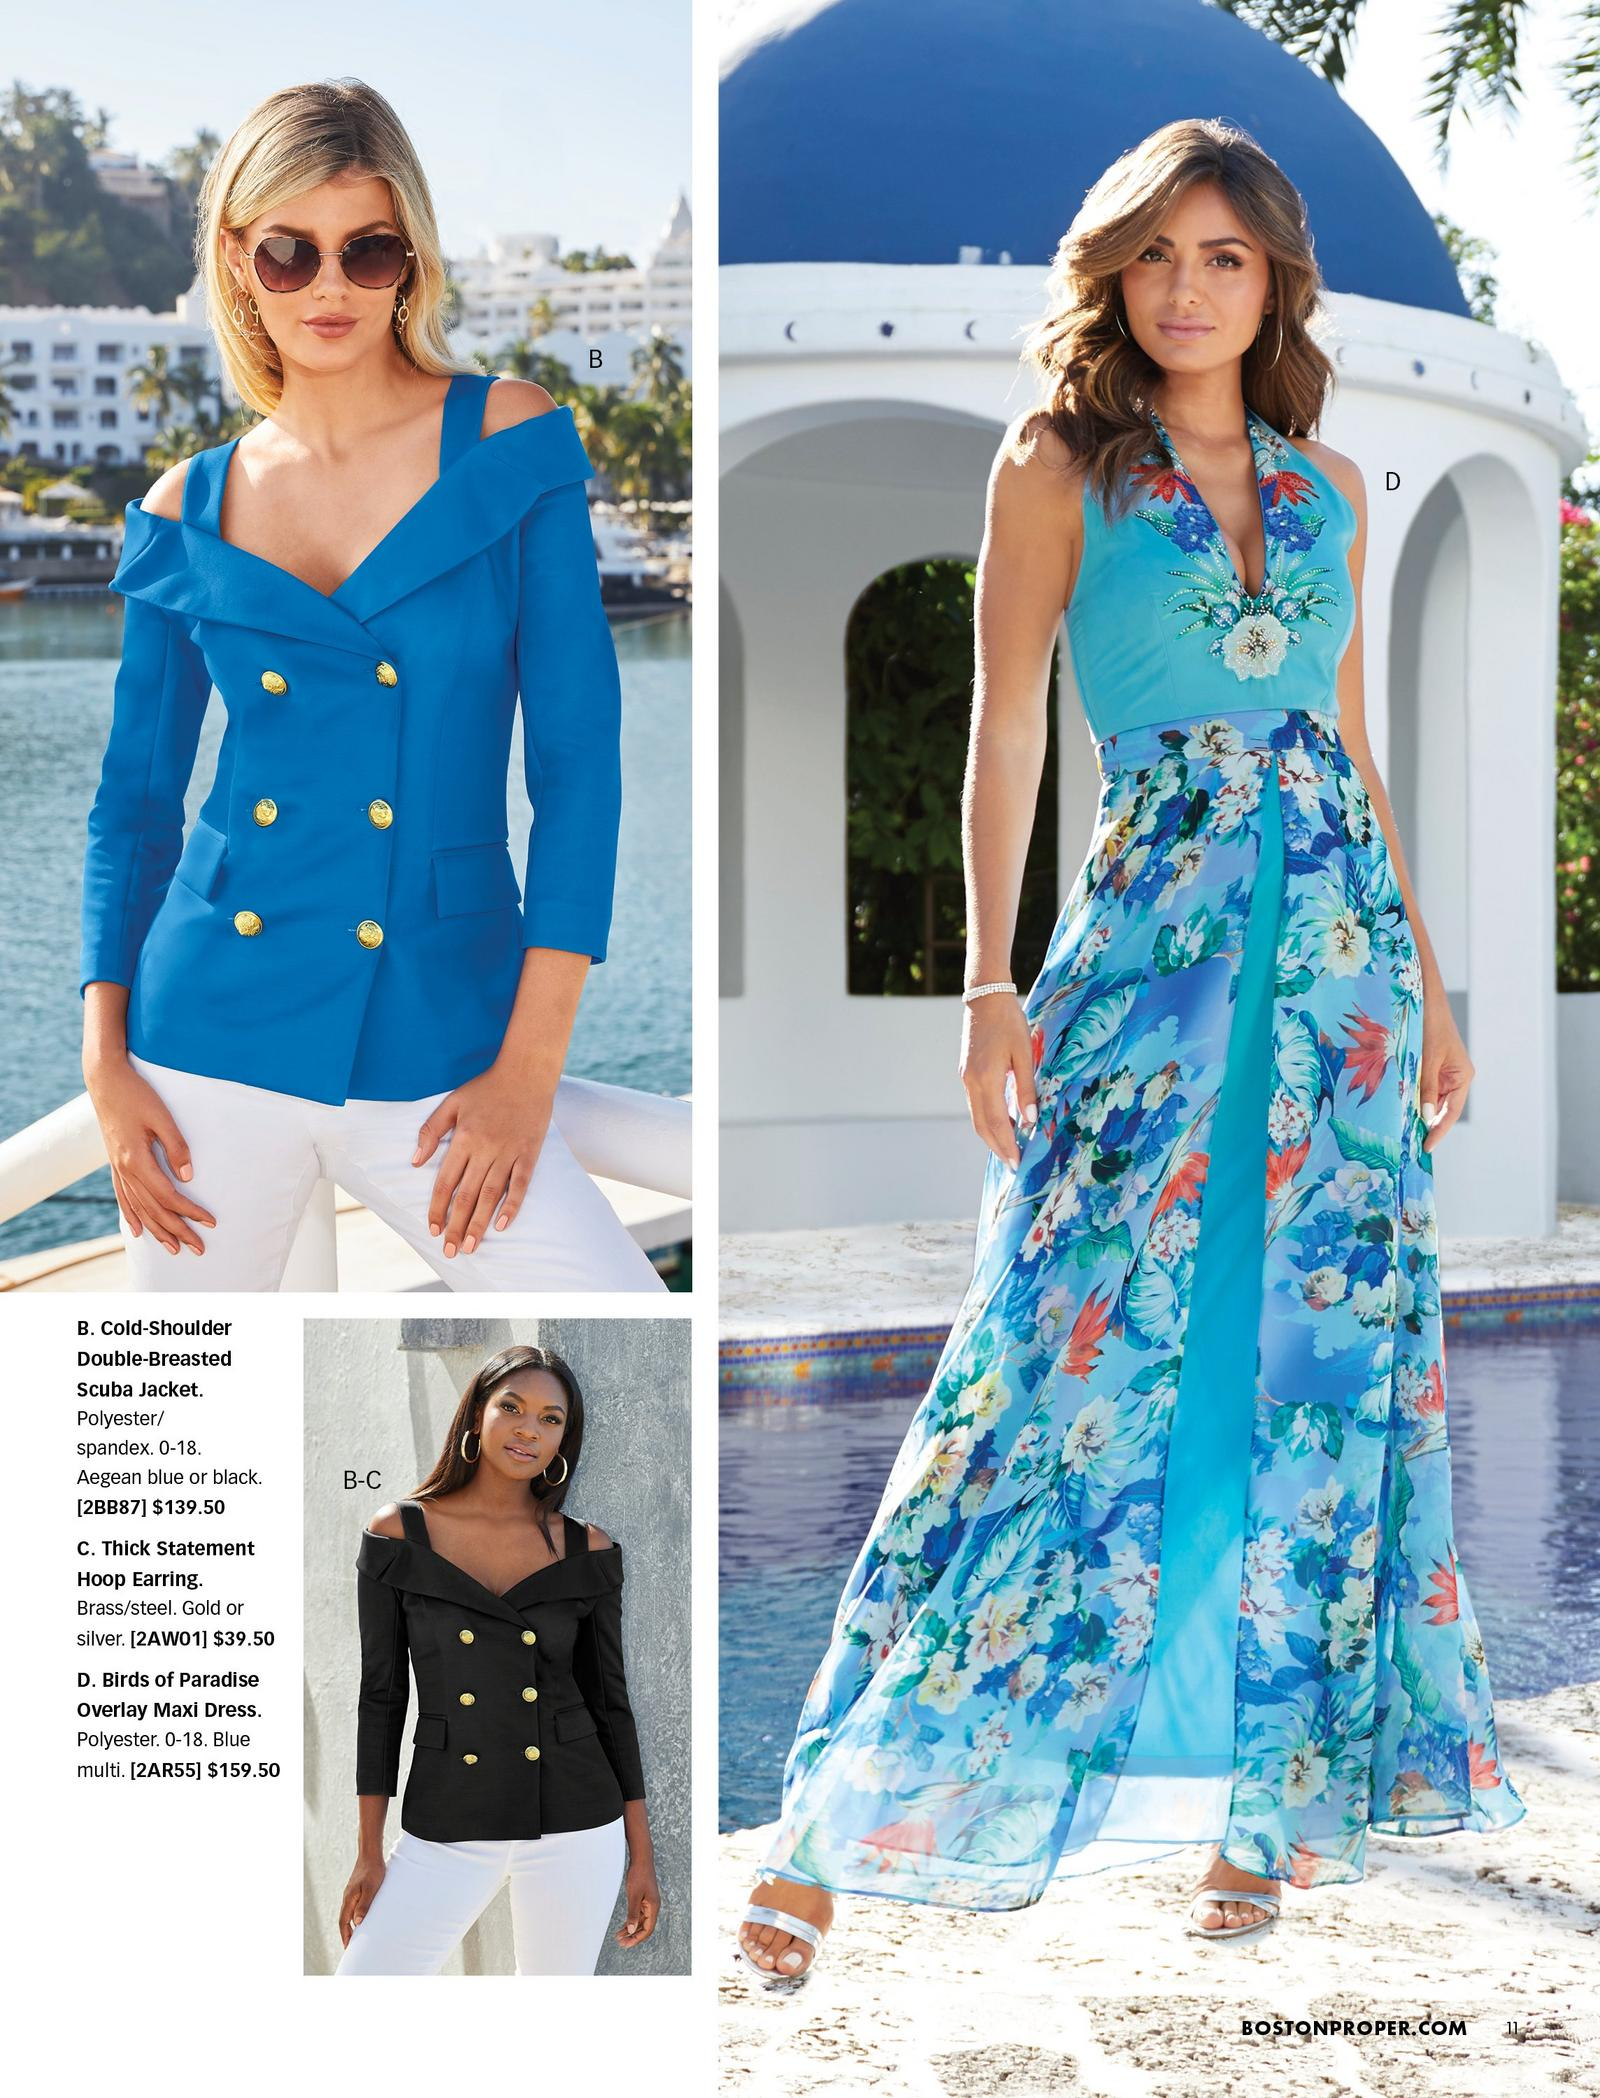 top left model wearing a blue cold-shoulder double-breasted blazer, white jeans, and sunglasses. bottom left model wearing same blazer in black. right model wearing a light blue and floral print overlay sleeveless jumpsuit.